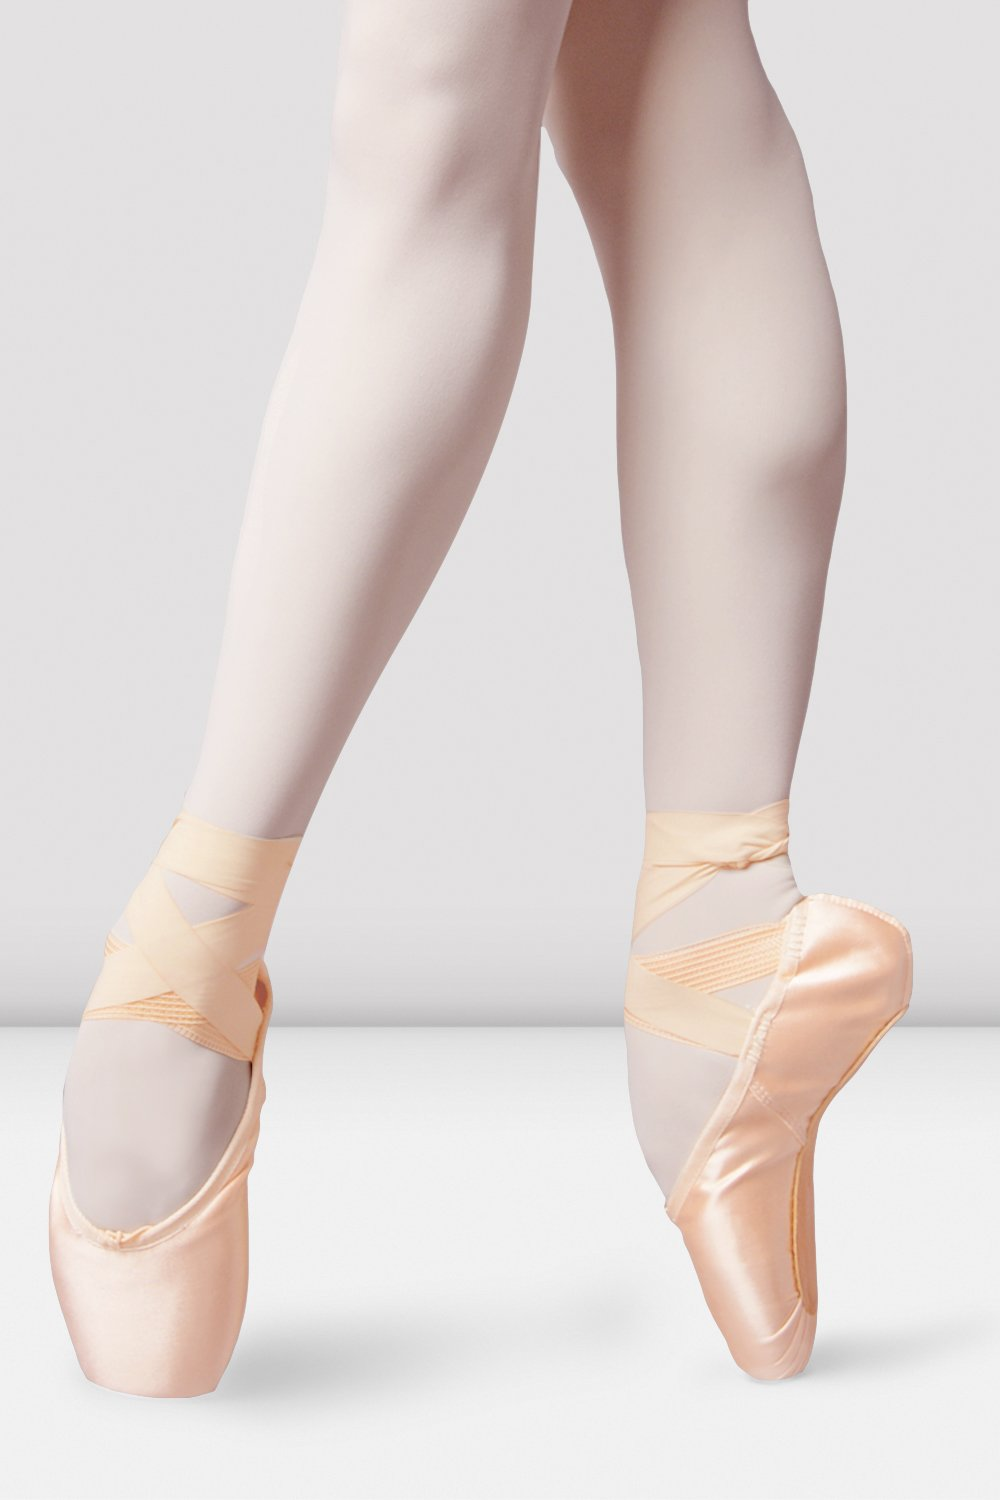 Bloch Balance Lisse Pointe Shoes - ES0162L